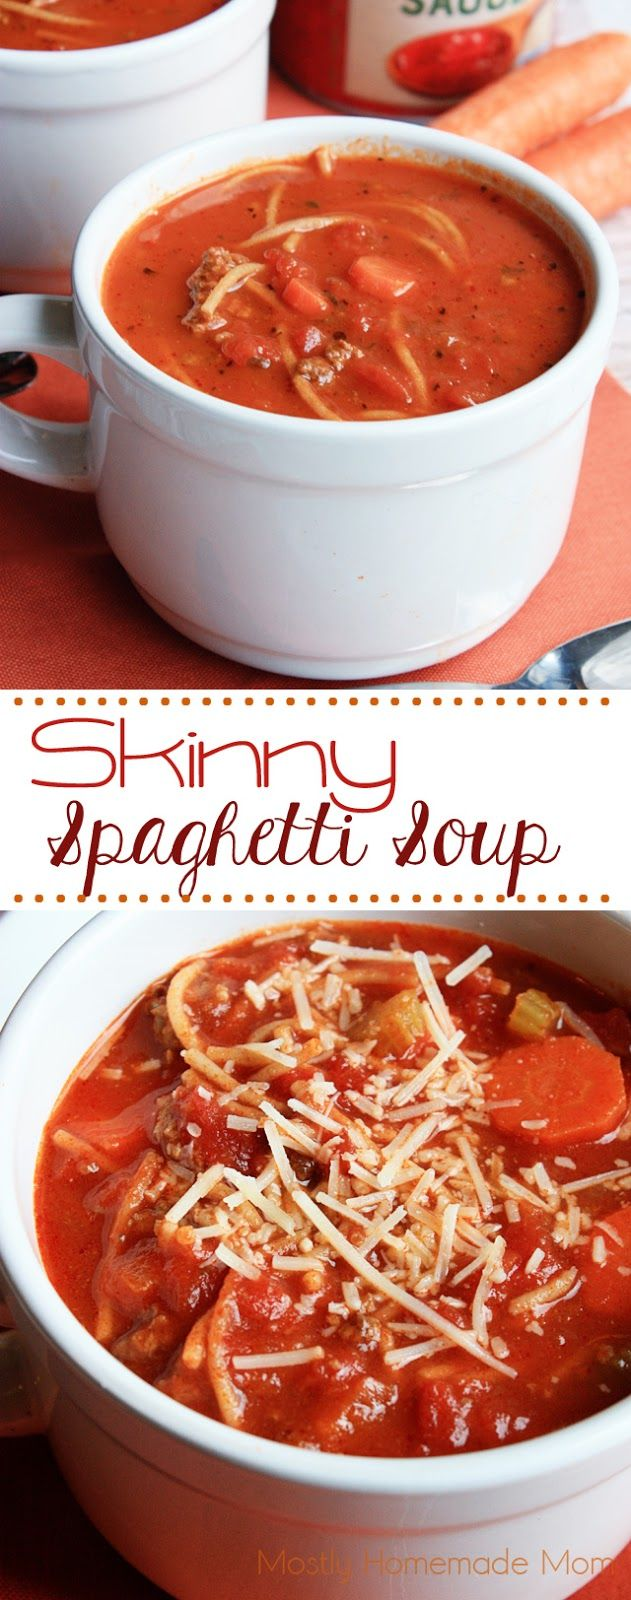 Skinny Spaghetti Soup - This nutritious soup is packed with tomatoes, carrots, celery, and whole-wheat spaghetti. The perfect alternative to your typical spaghetti dinner night!